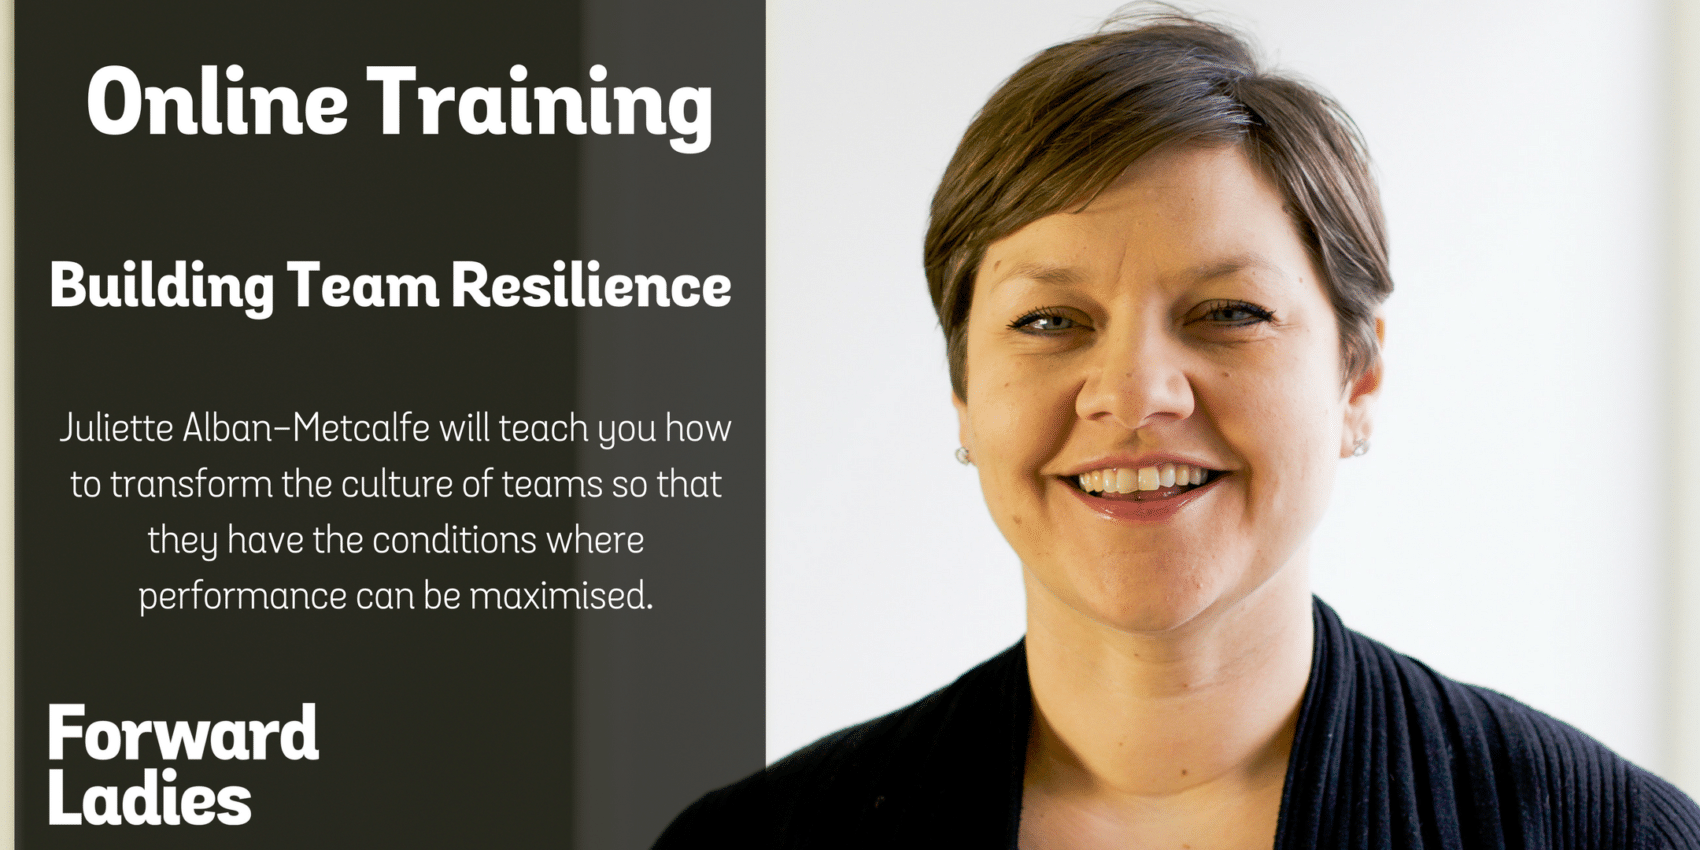 Building Team Resilience Webinar with Juliette Alban-Metcalfe